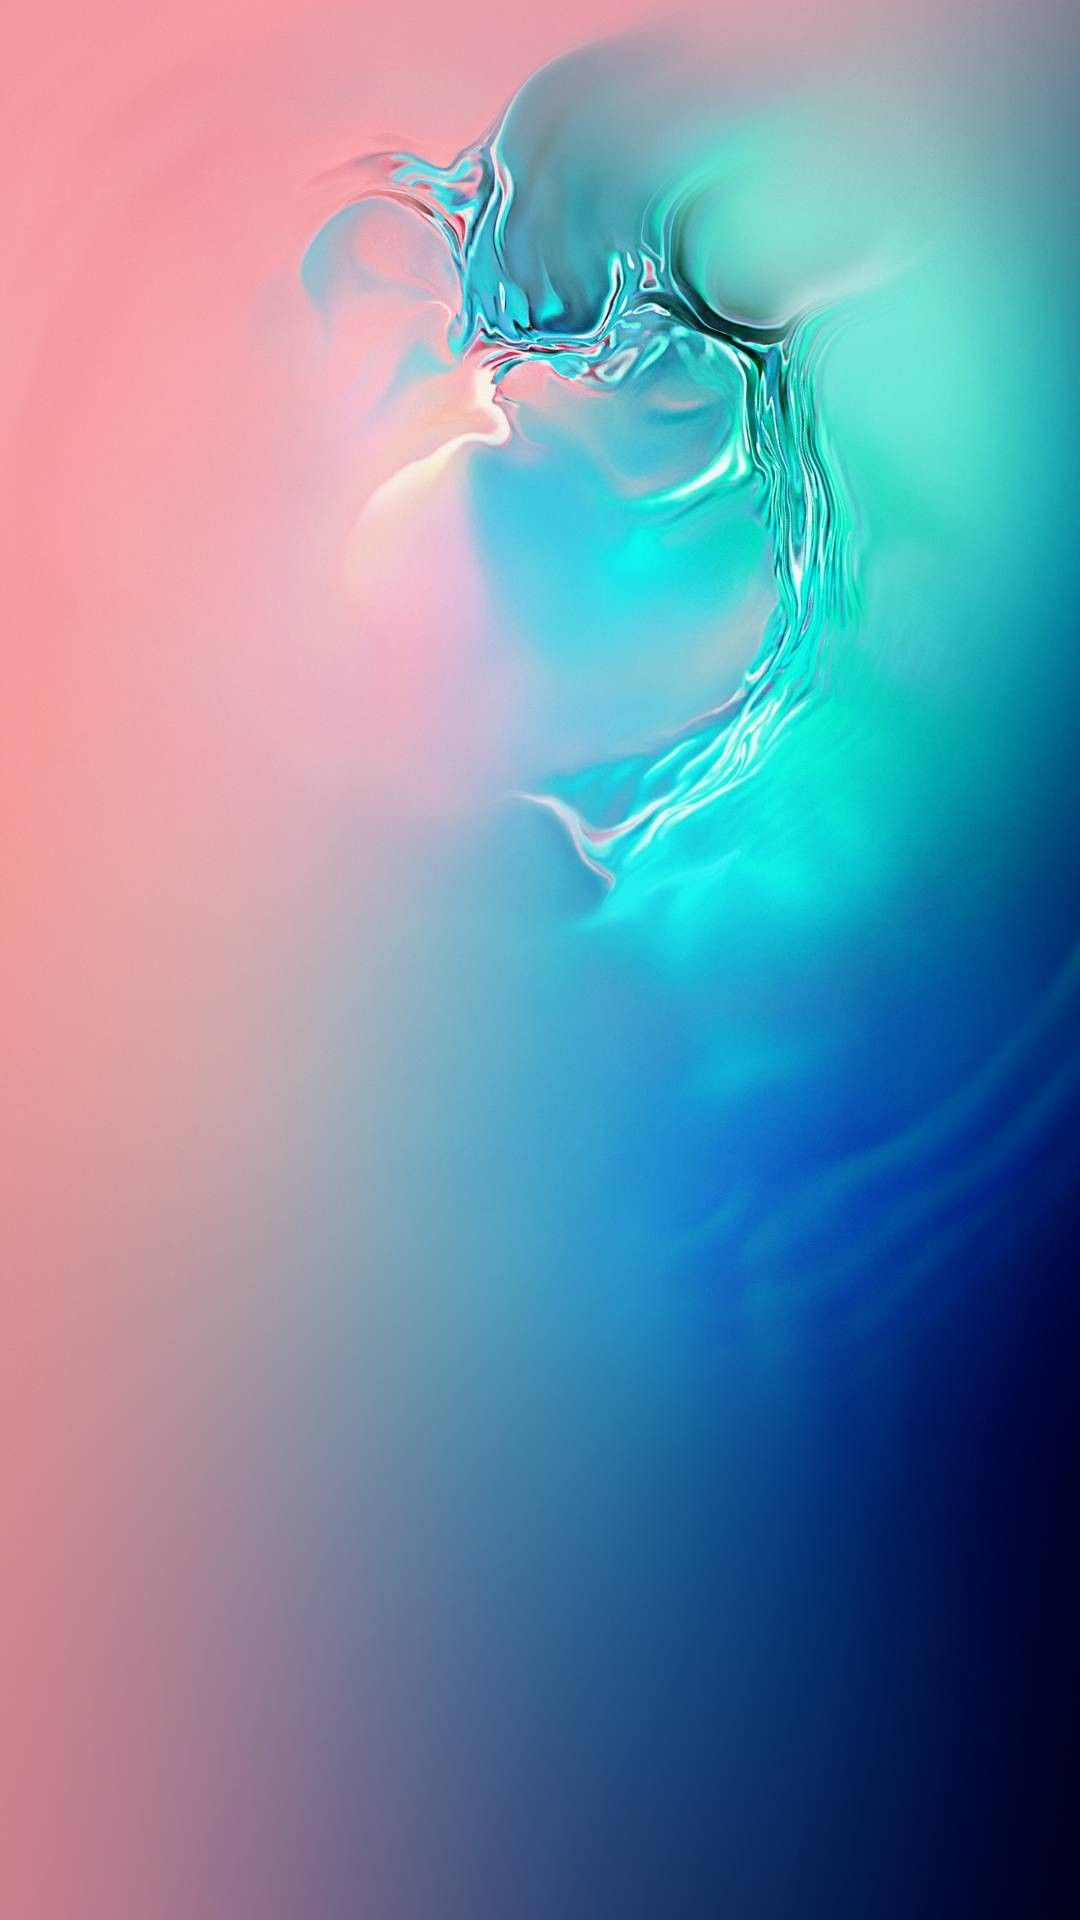 List of Cool Abstract Phone Wallpaper HD This Month by Uploaded by user